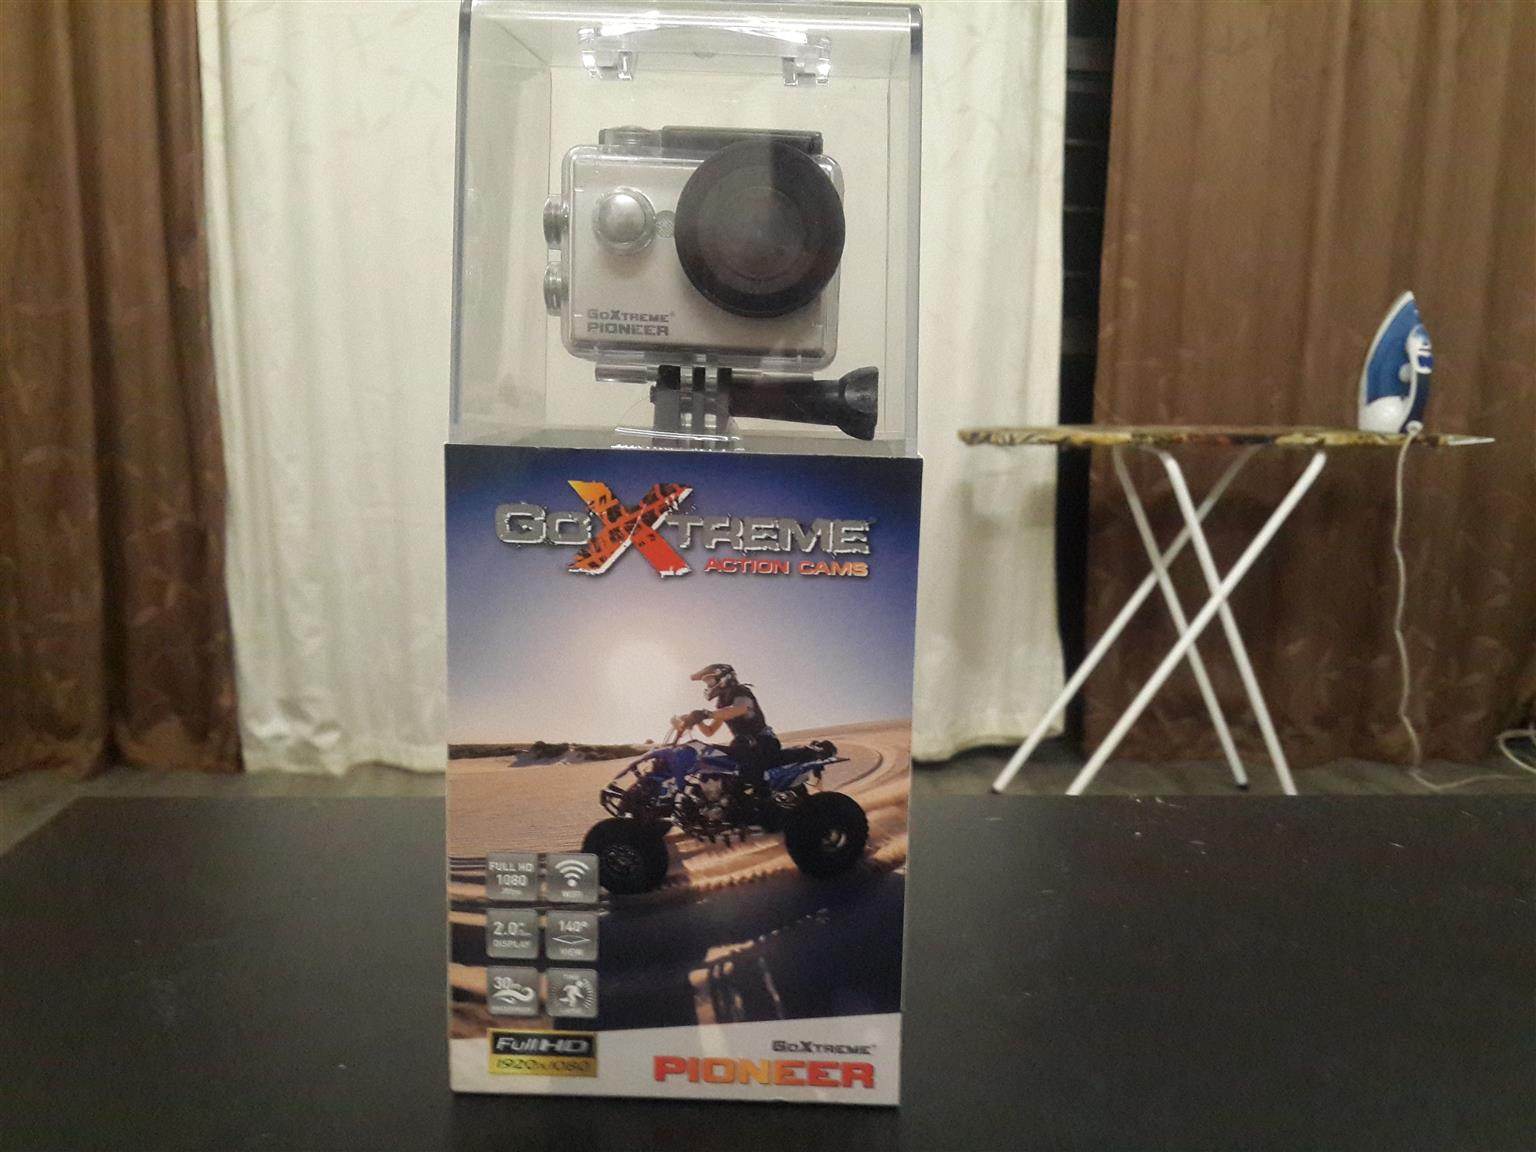 Pioneer Go Xtreme action camer